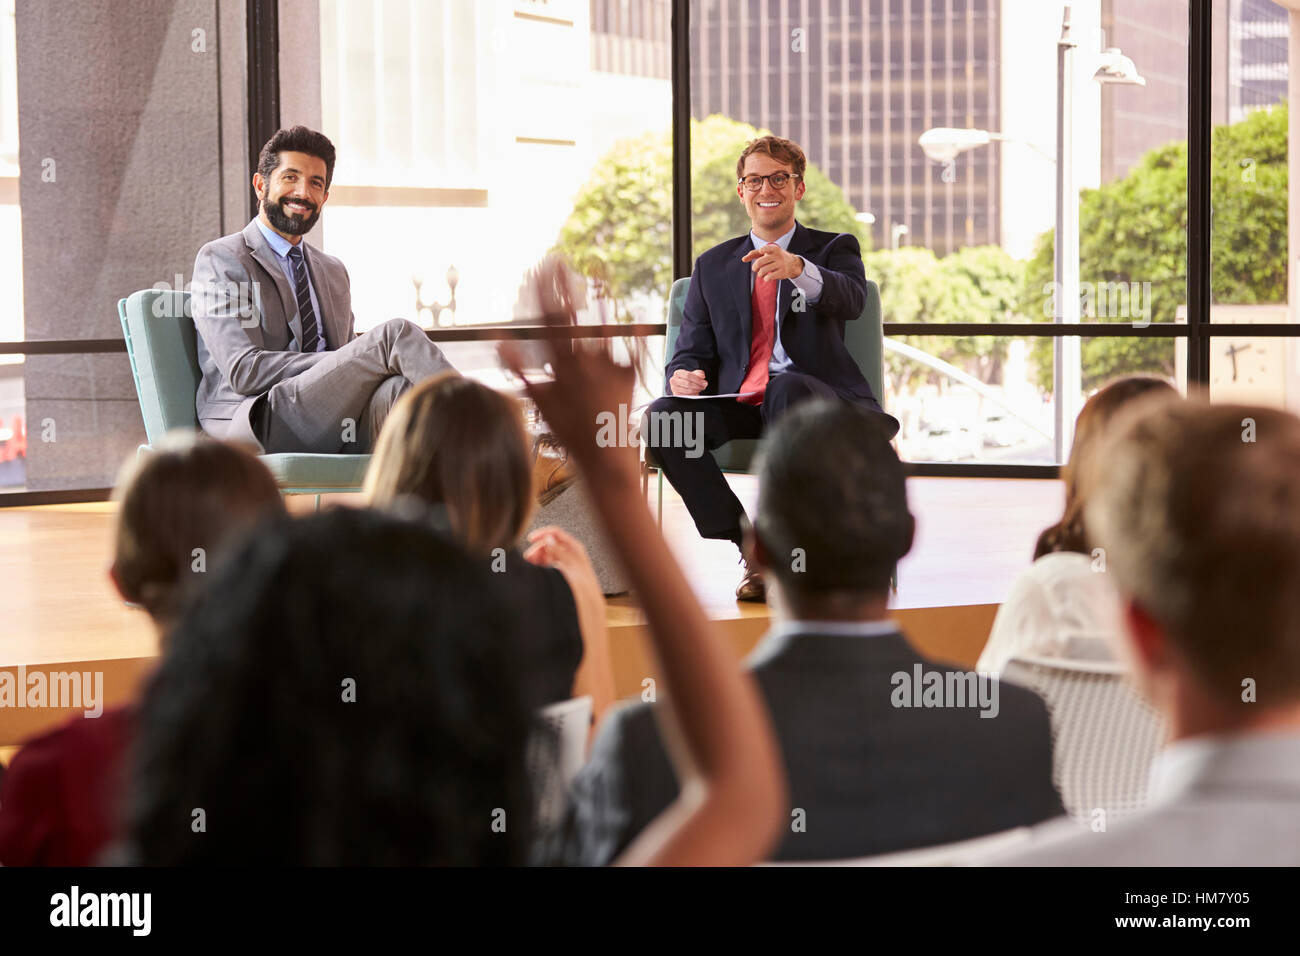 Speakers at a business seminar take questions from audience - Stock Image